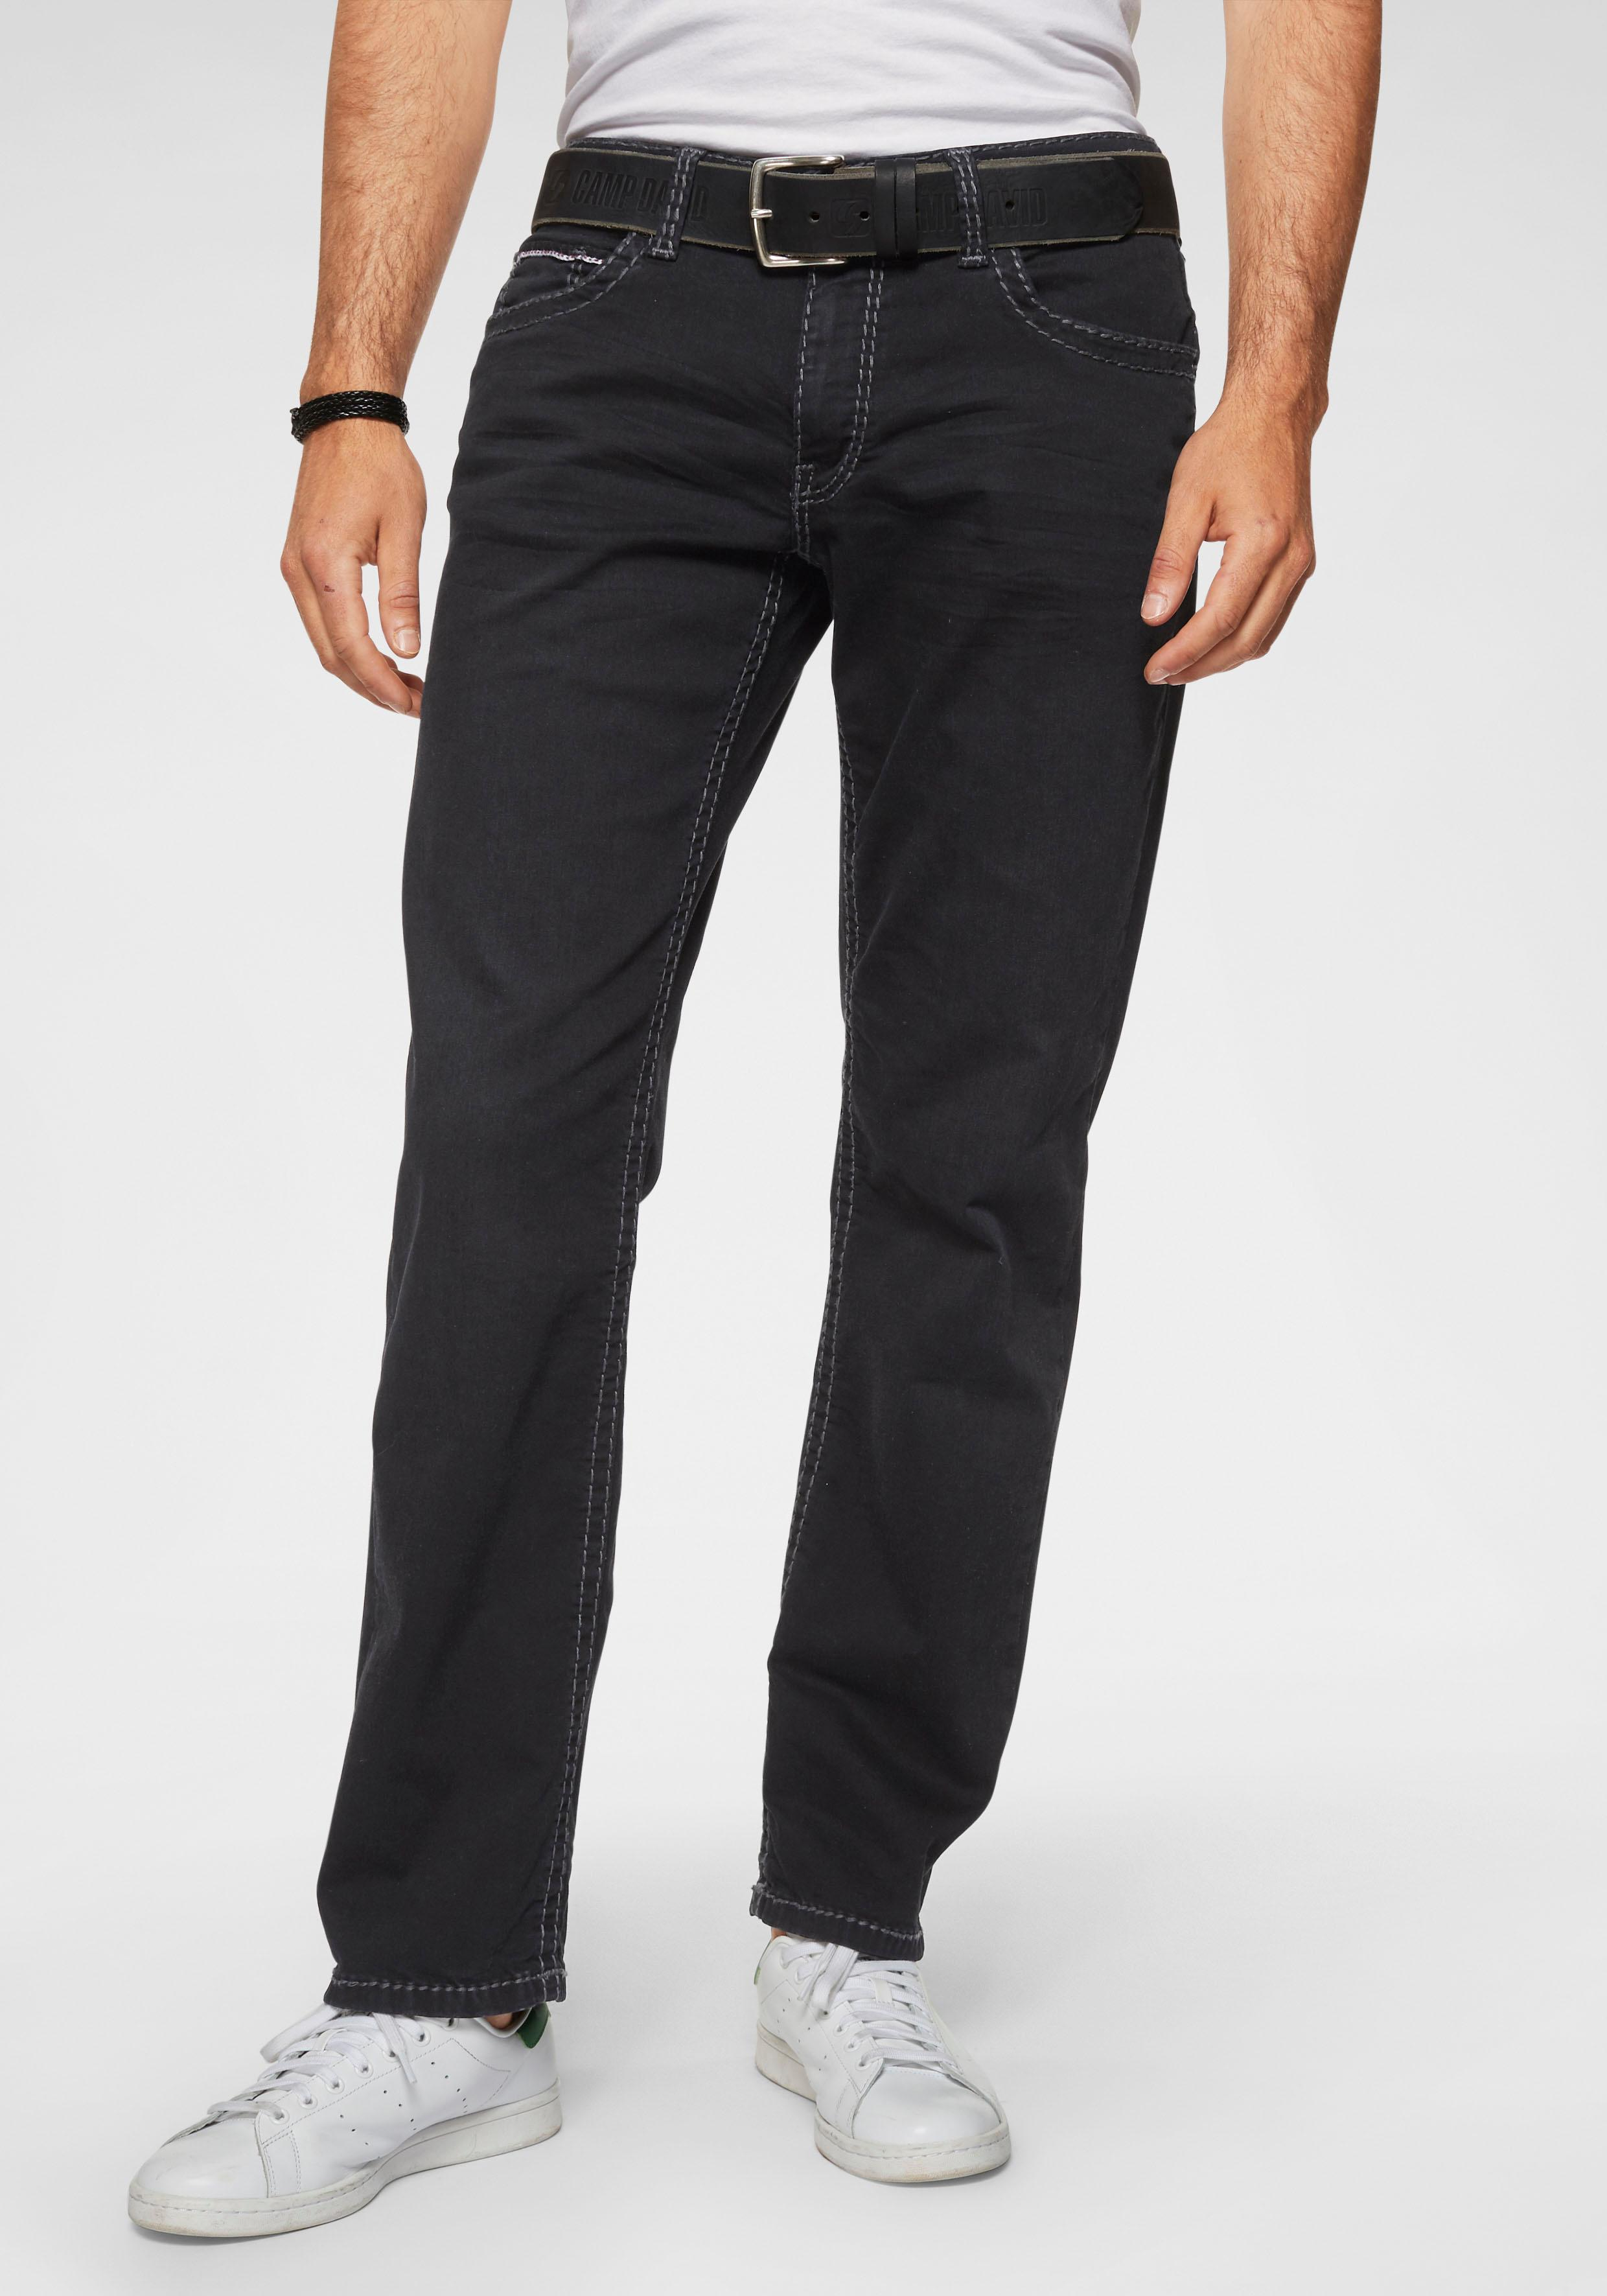 Image of CAMP DAVID Loose-fit-Jeans »CO:NO:C622«